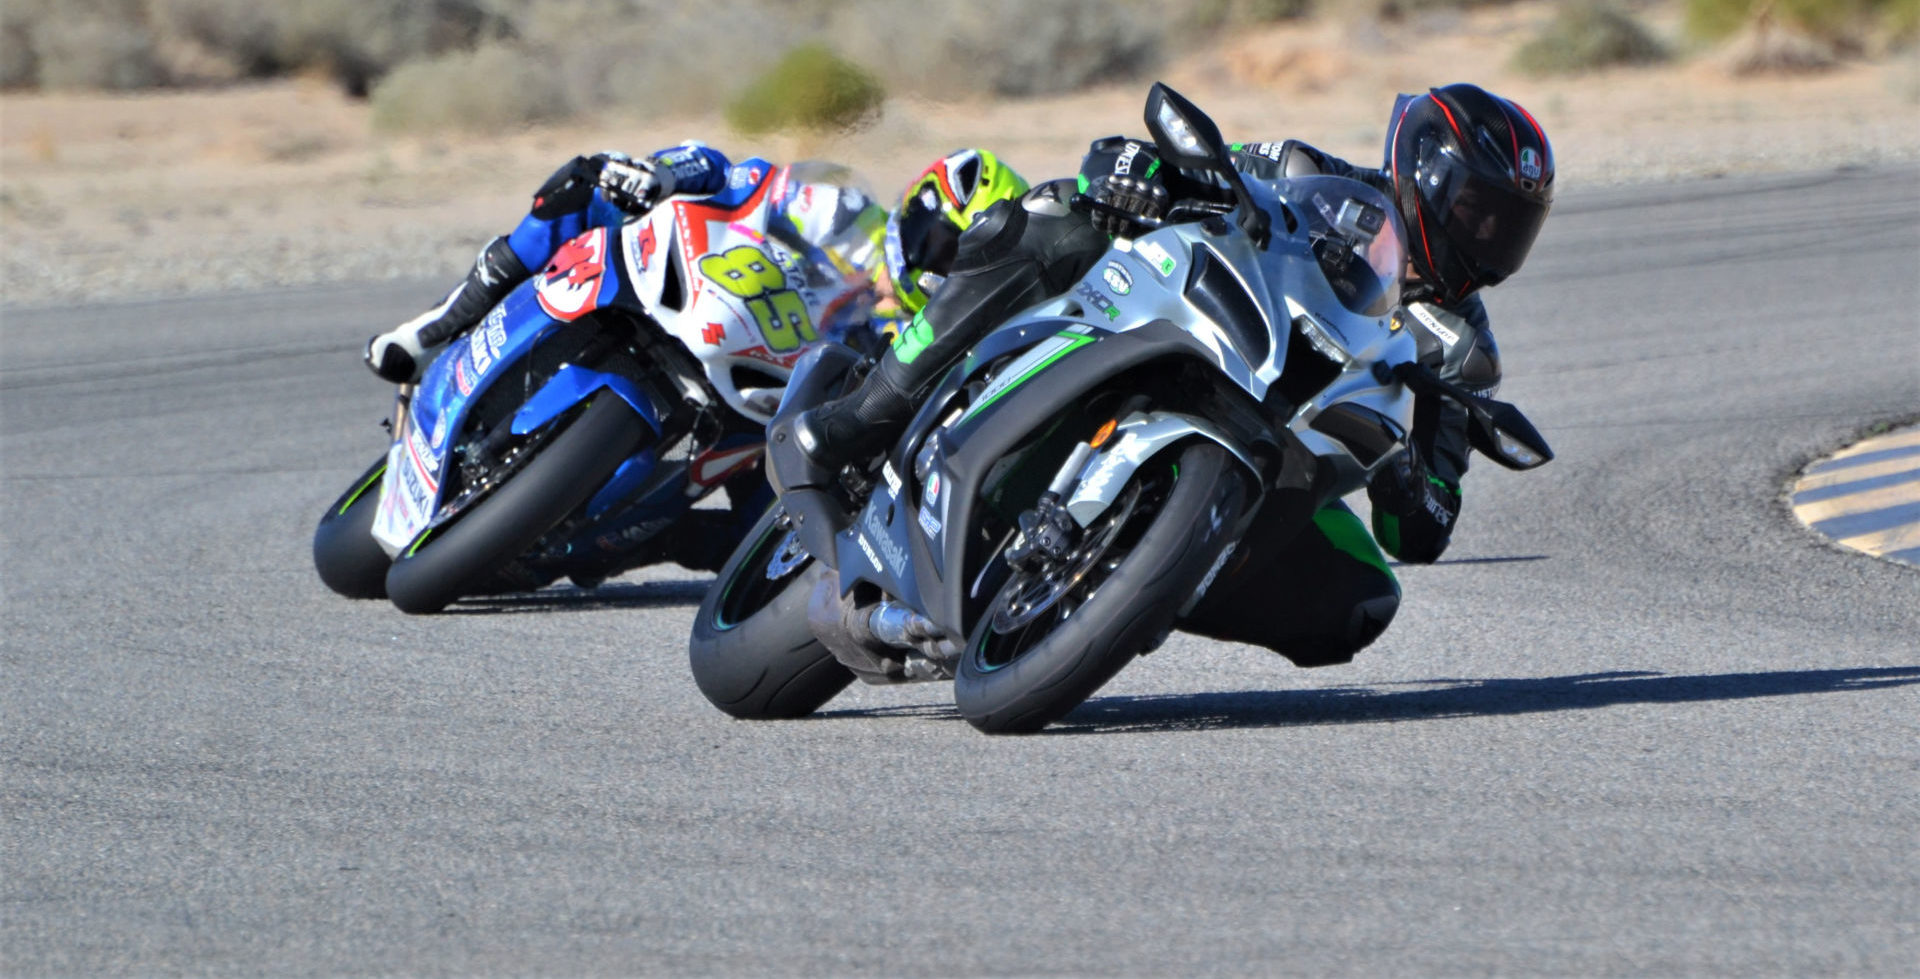 JP43training.com's Jason Pridmore, seen here working with 2019 MotoAmerica Twins Cup Champion Alex Dumas (85), is holding two events at Chuckwalla Valley Raceway in January. Photo by David Swarts.